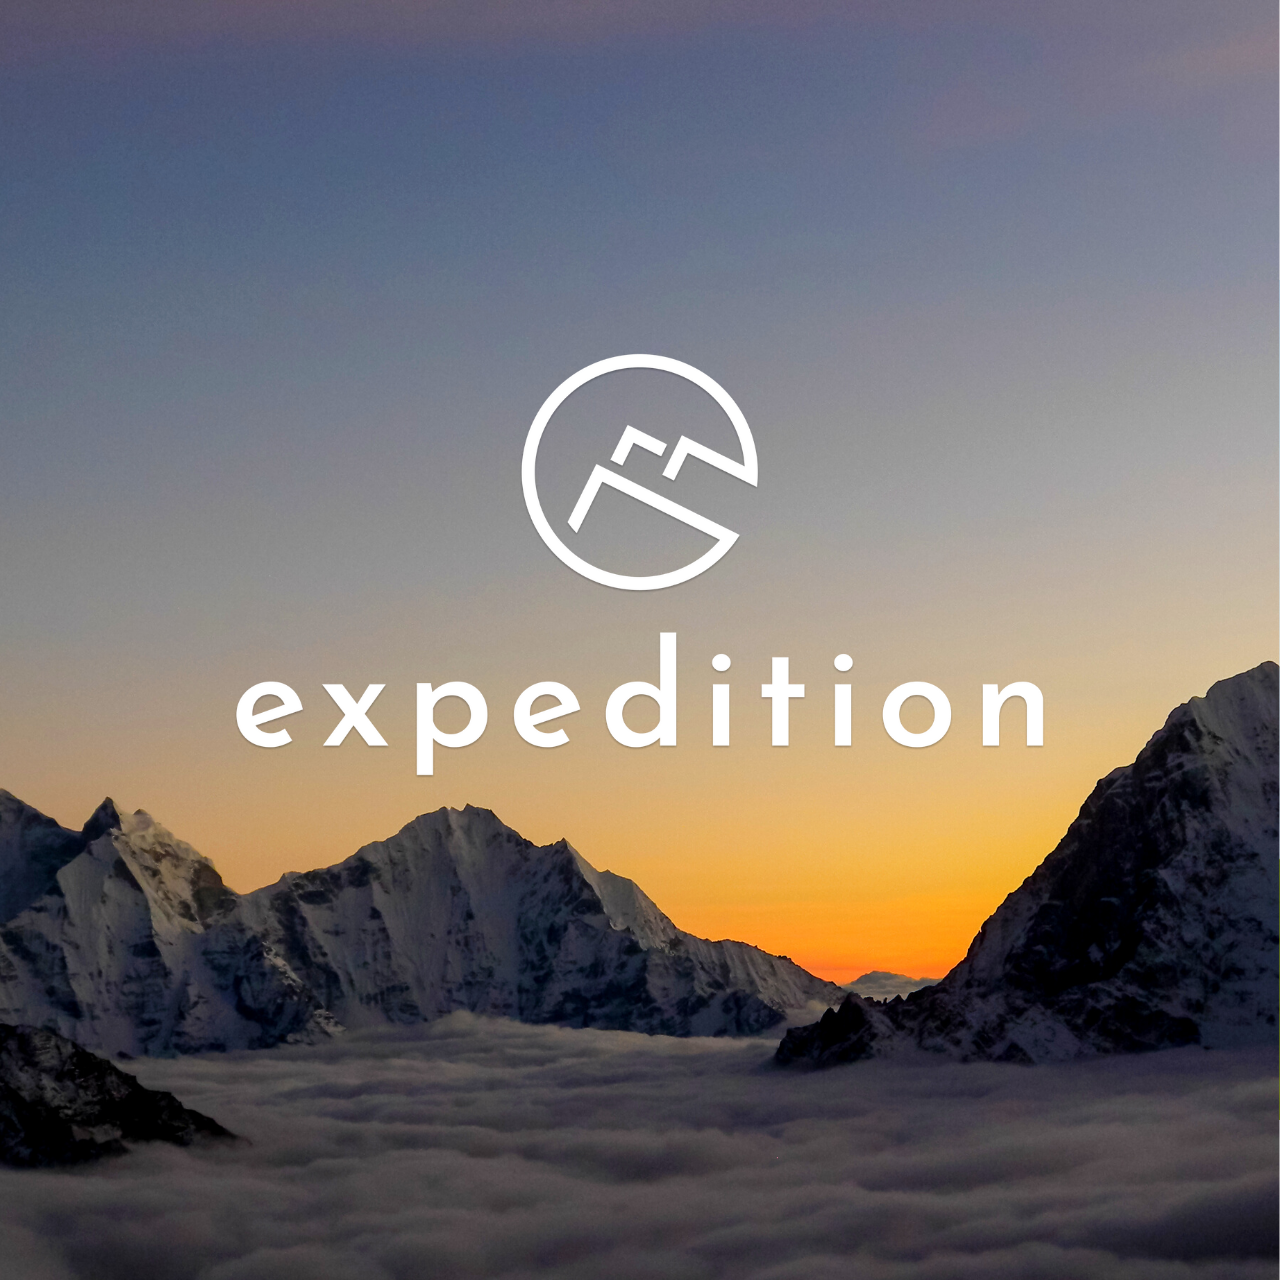 Expedition - Square Images (3)